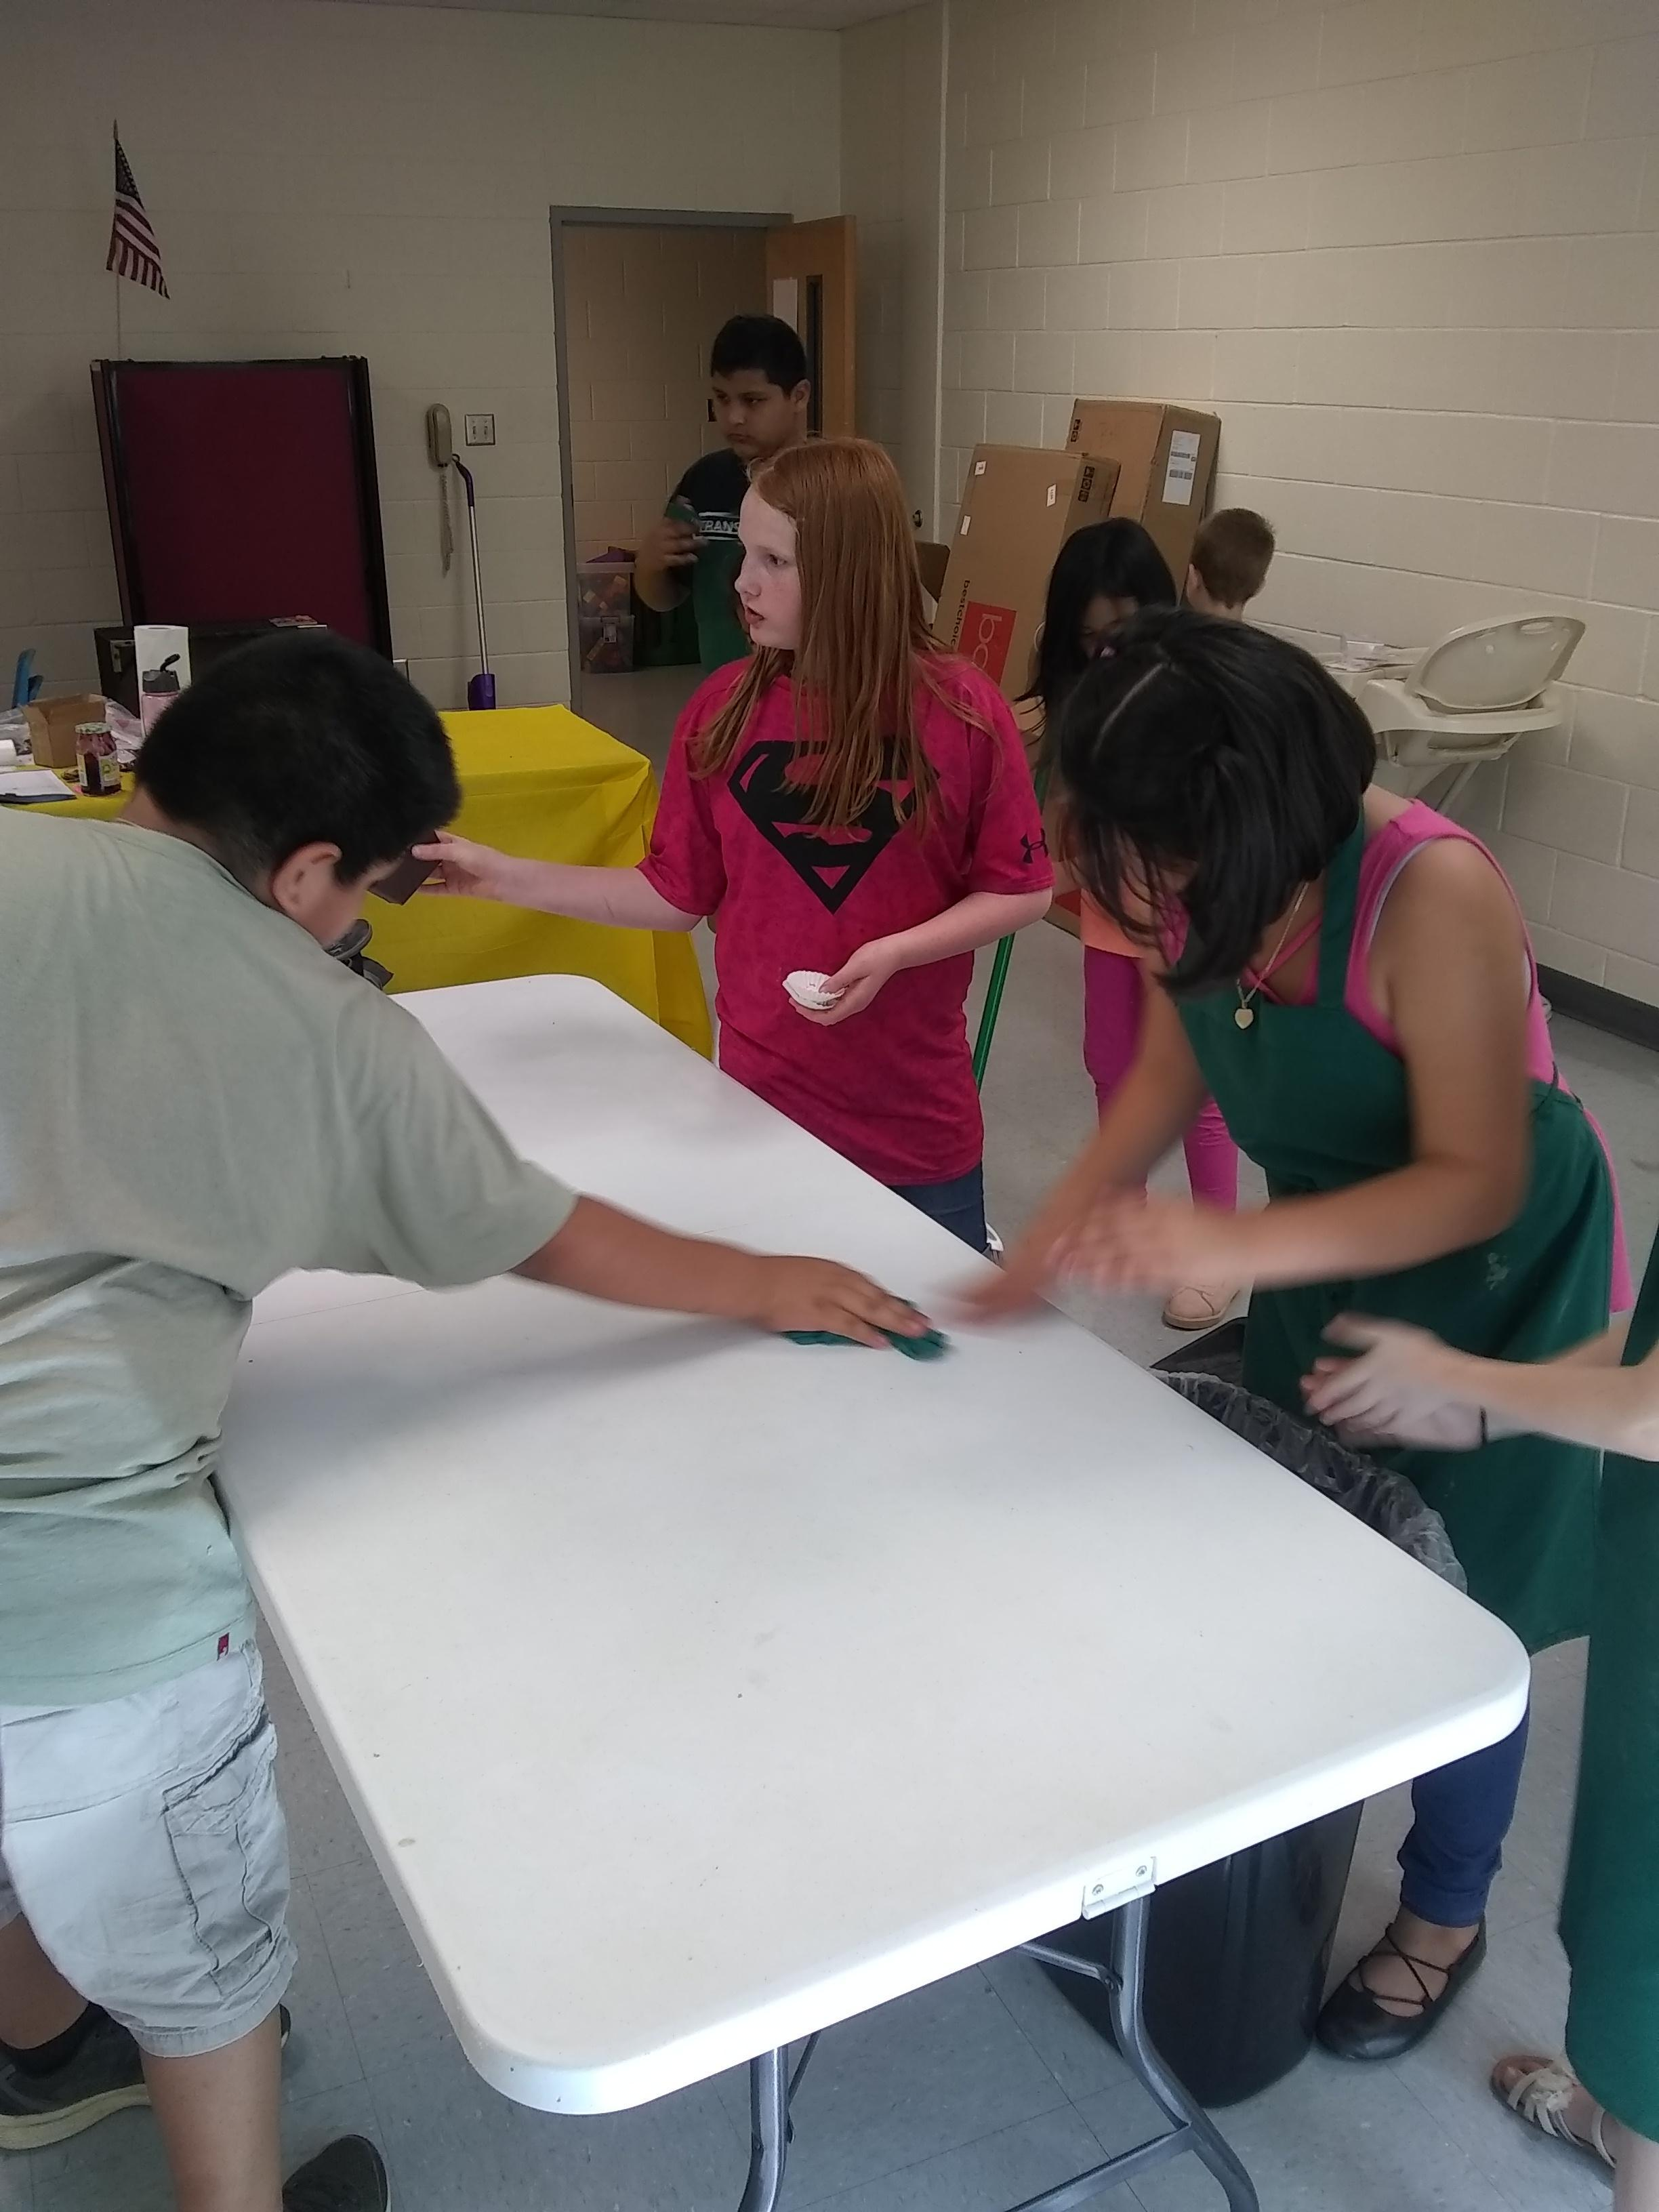 kids cleaning up tables and workroom